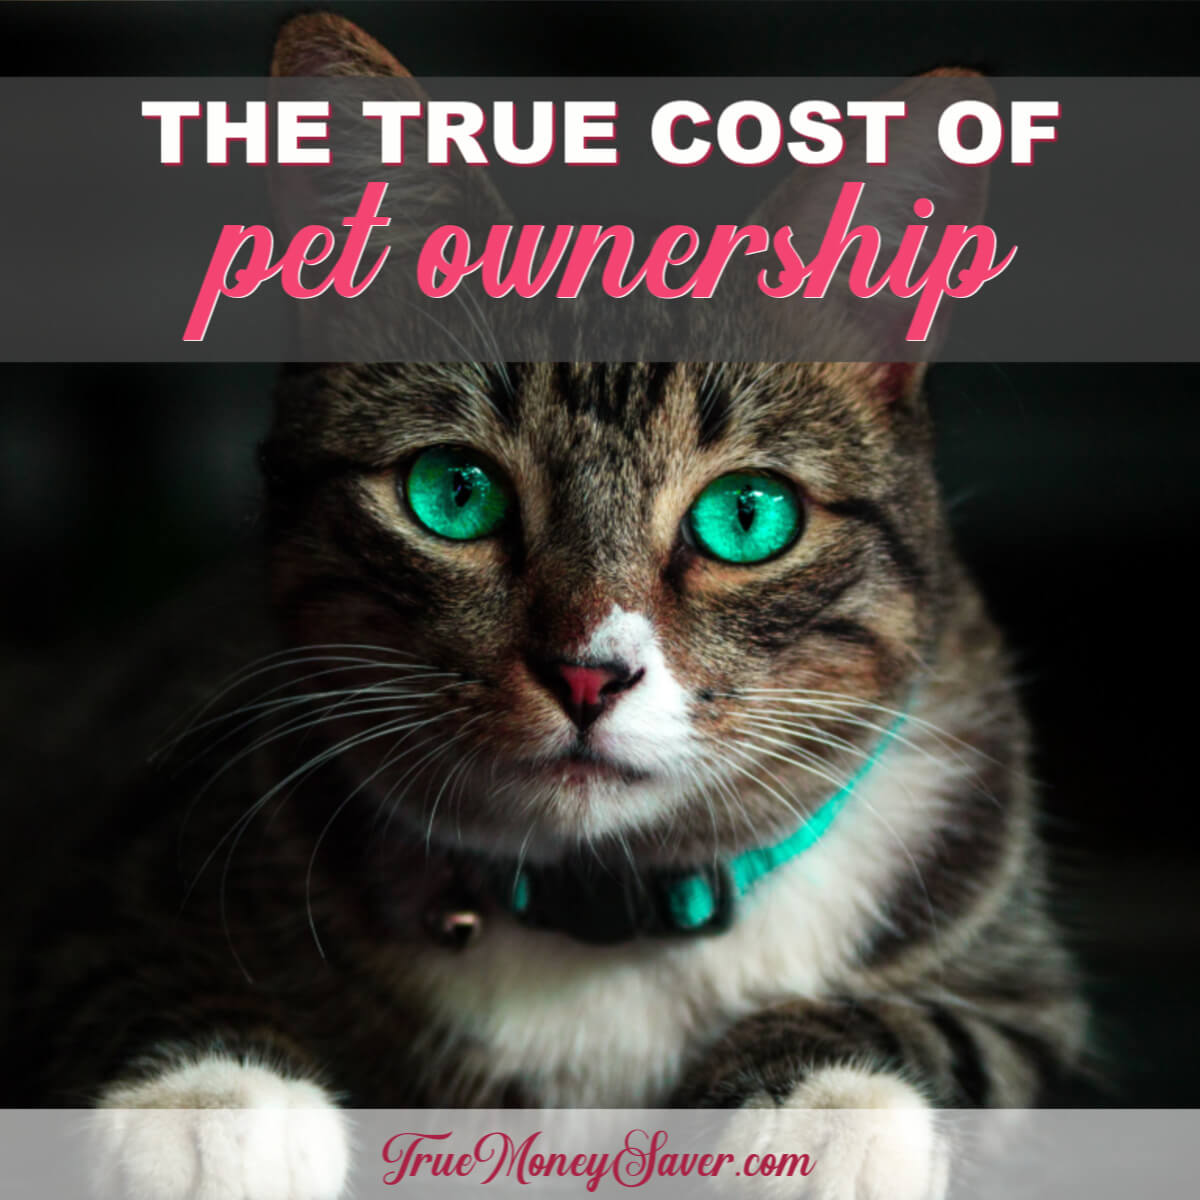 The True Cost Of Owning A Pet